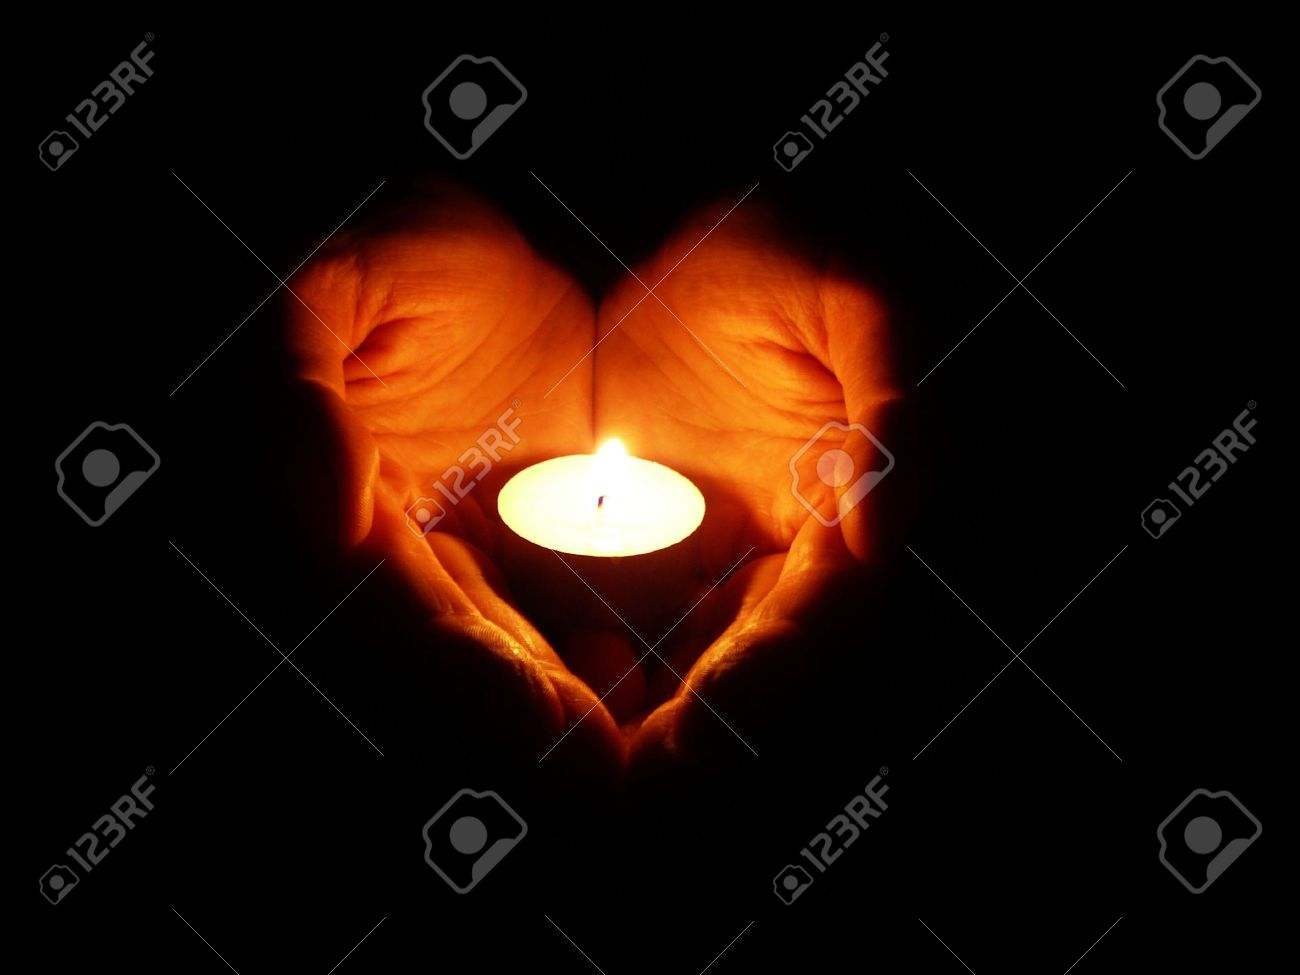 heart-shaped hands holding one candle in darkness Stock Photo - 1171287